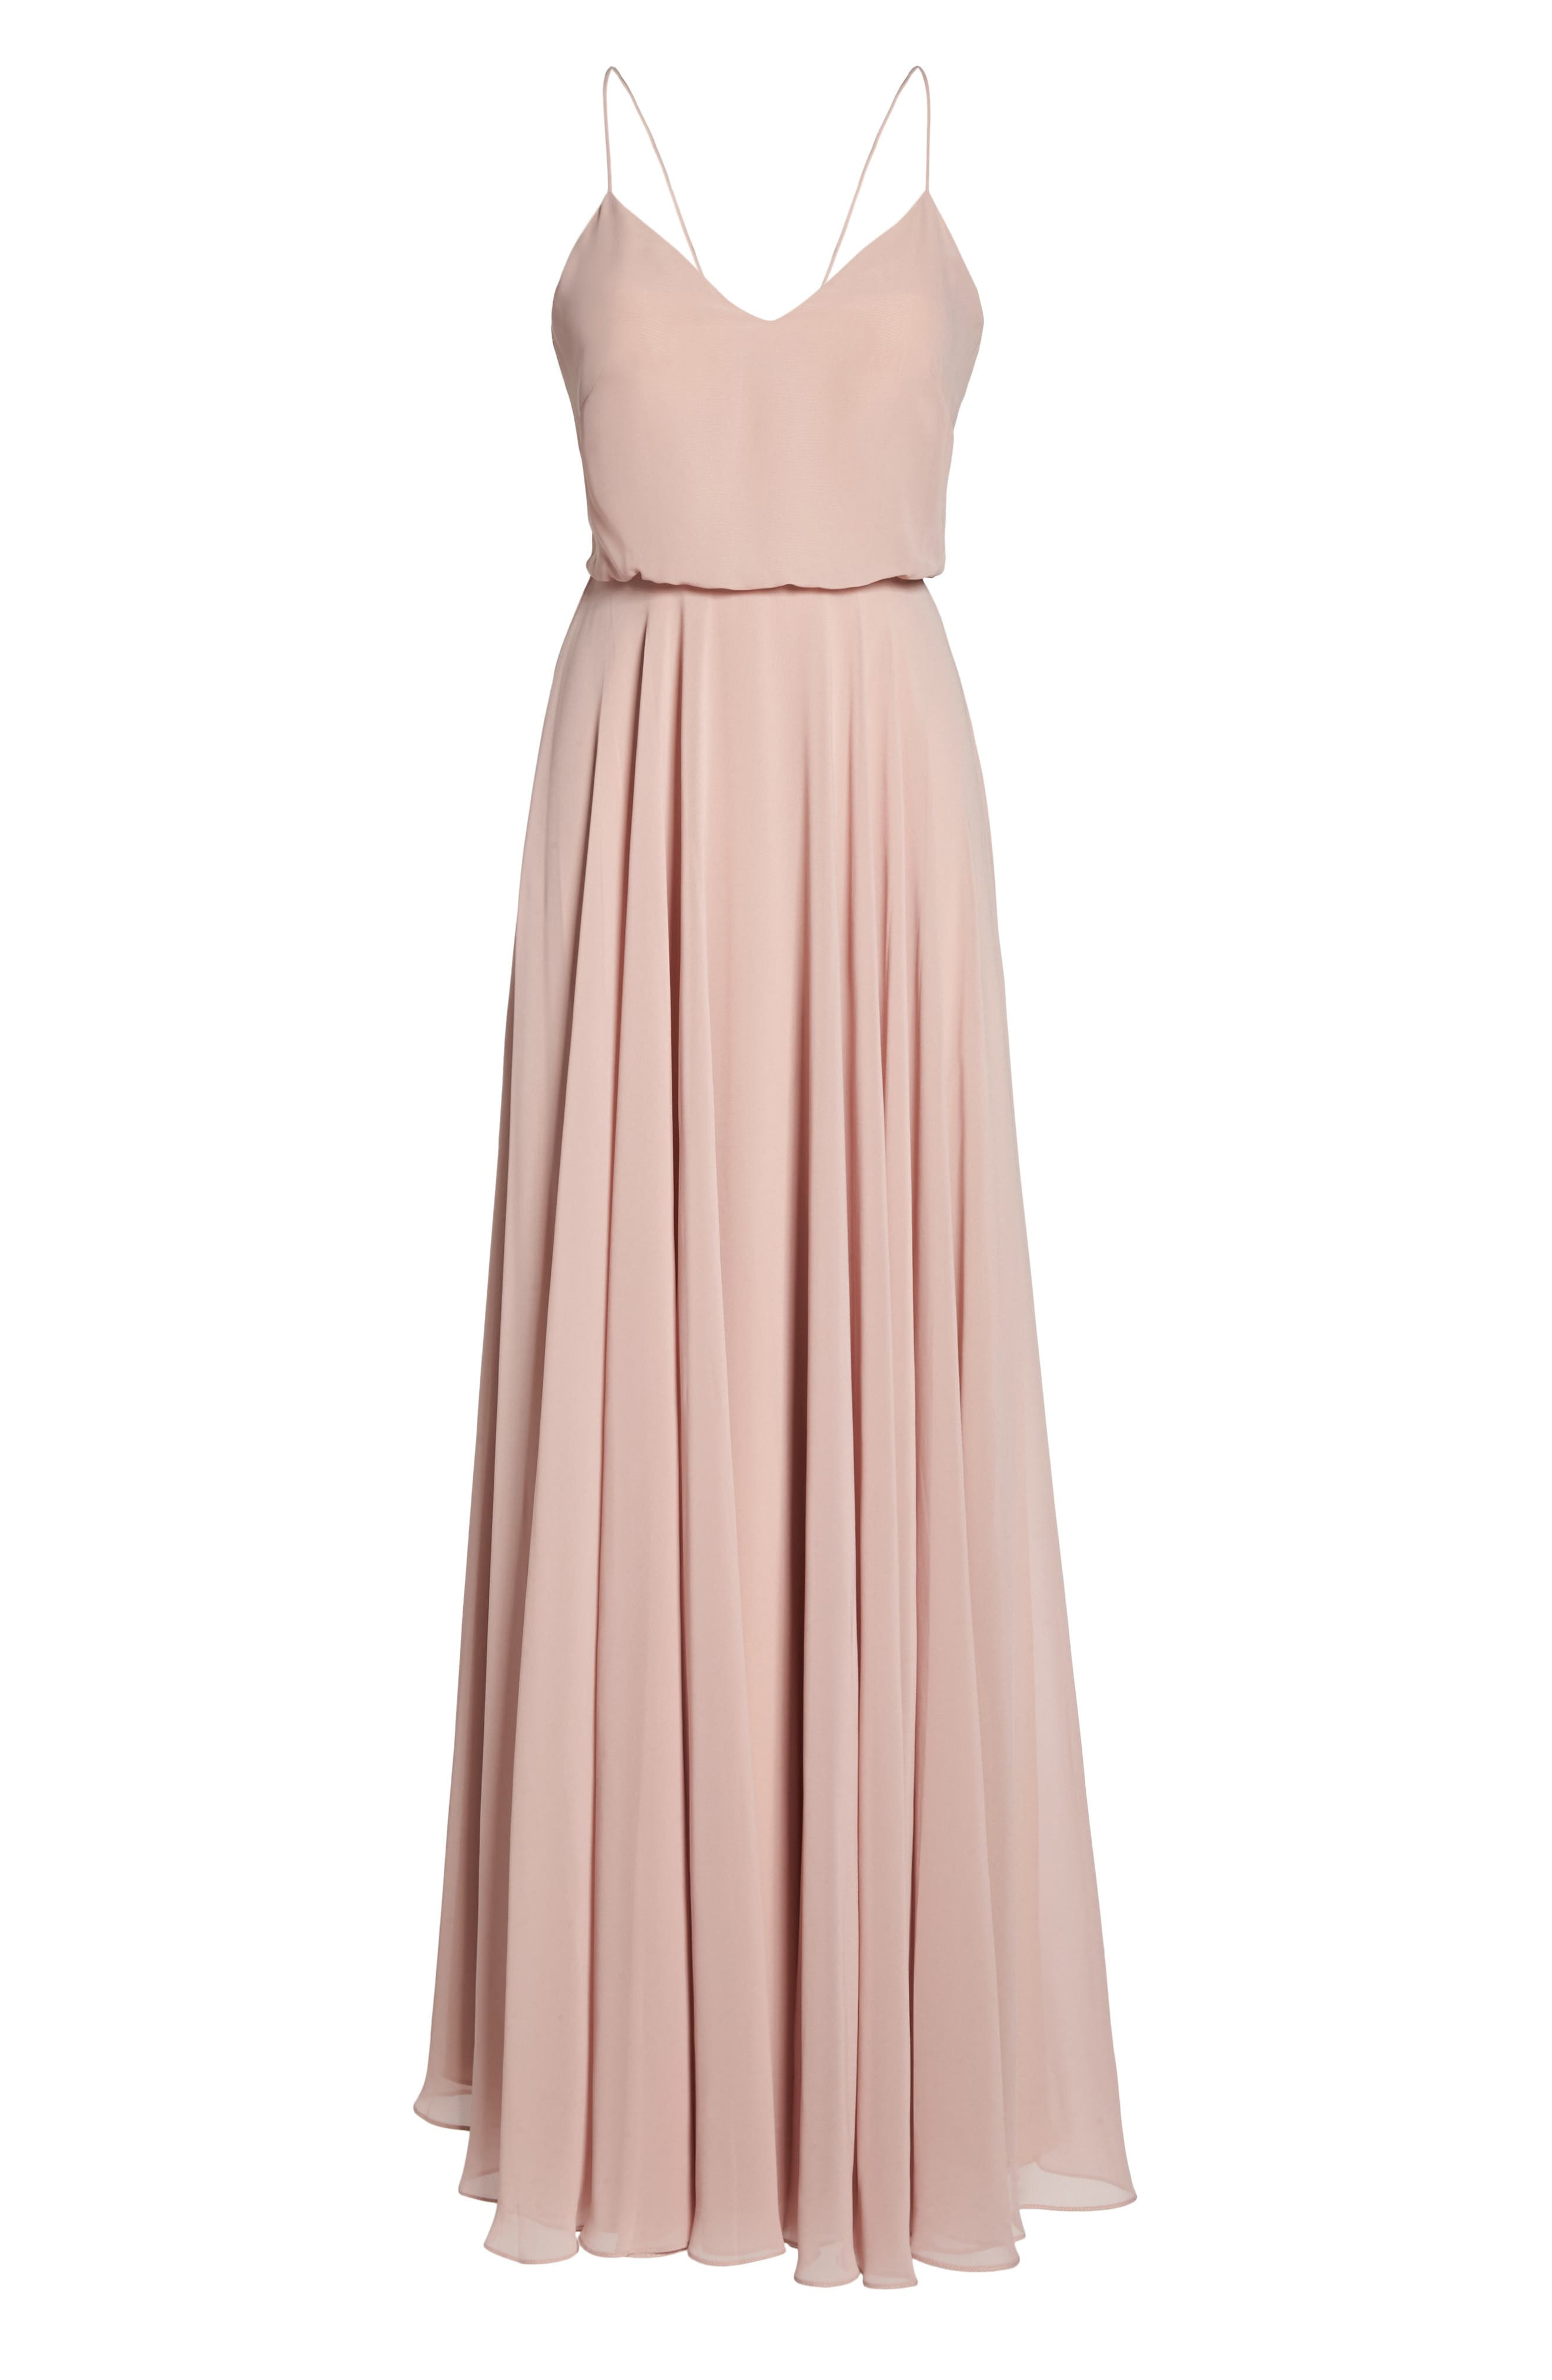 JENNY YOO, Inesse Chiffon V-Neck Spaghetti Strap Gown, Alternate thumbnail 7, color, WHIPPED APRICOT